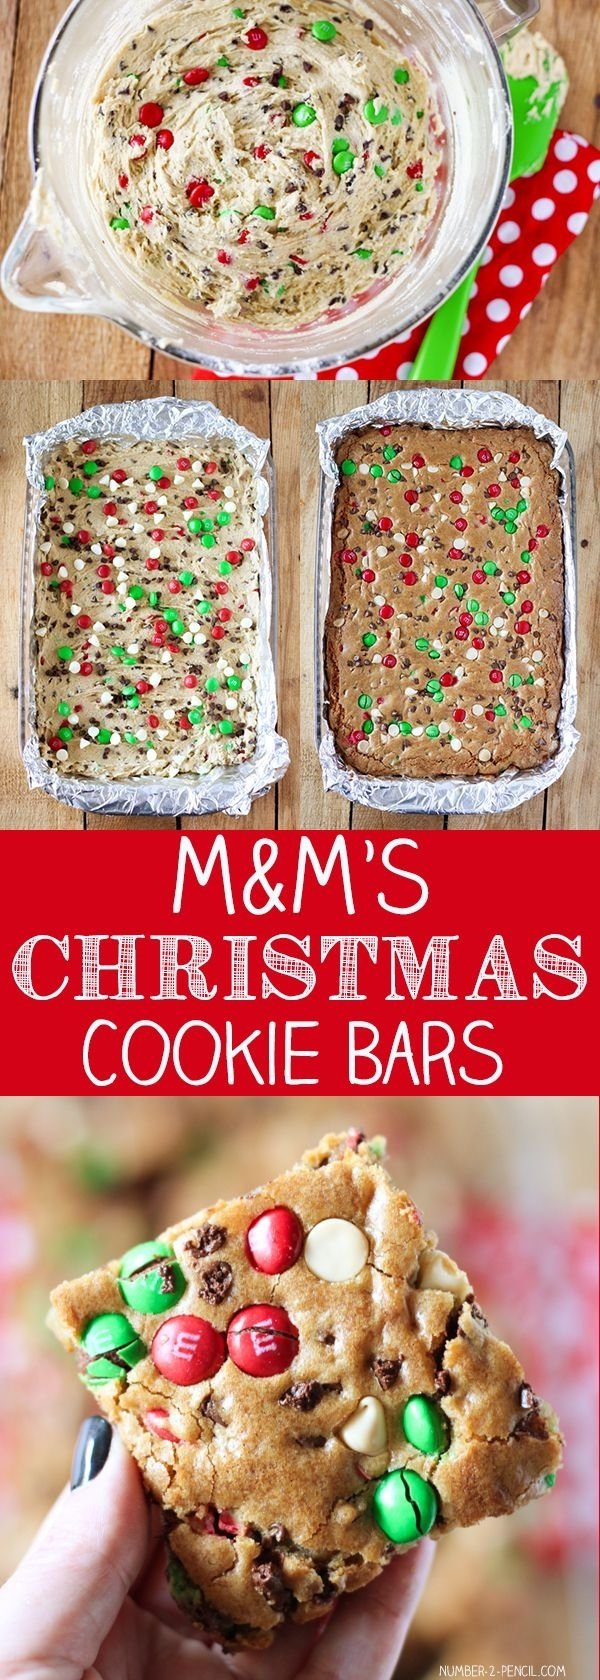 10 Perfect Christmas Ideas For Kids Pinterest 852 best holidays christmas goodies images on pinterest 3 2020